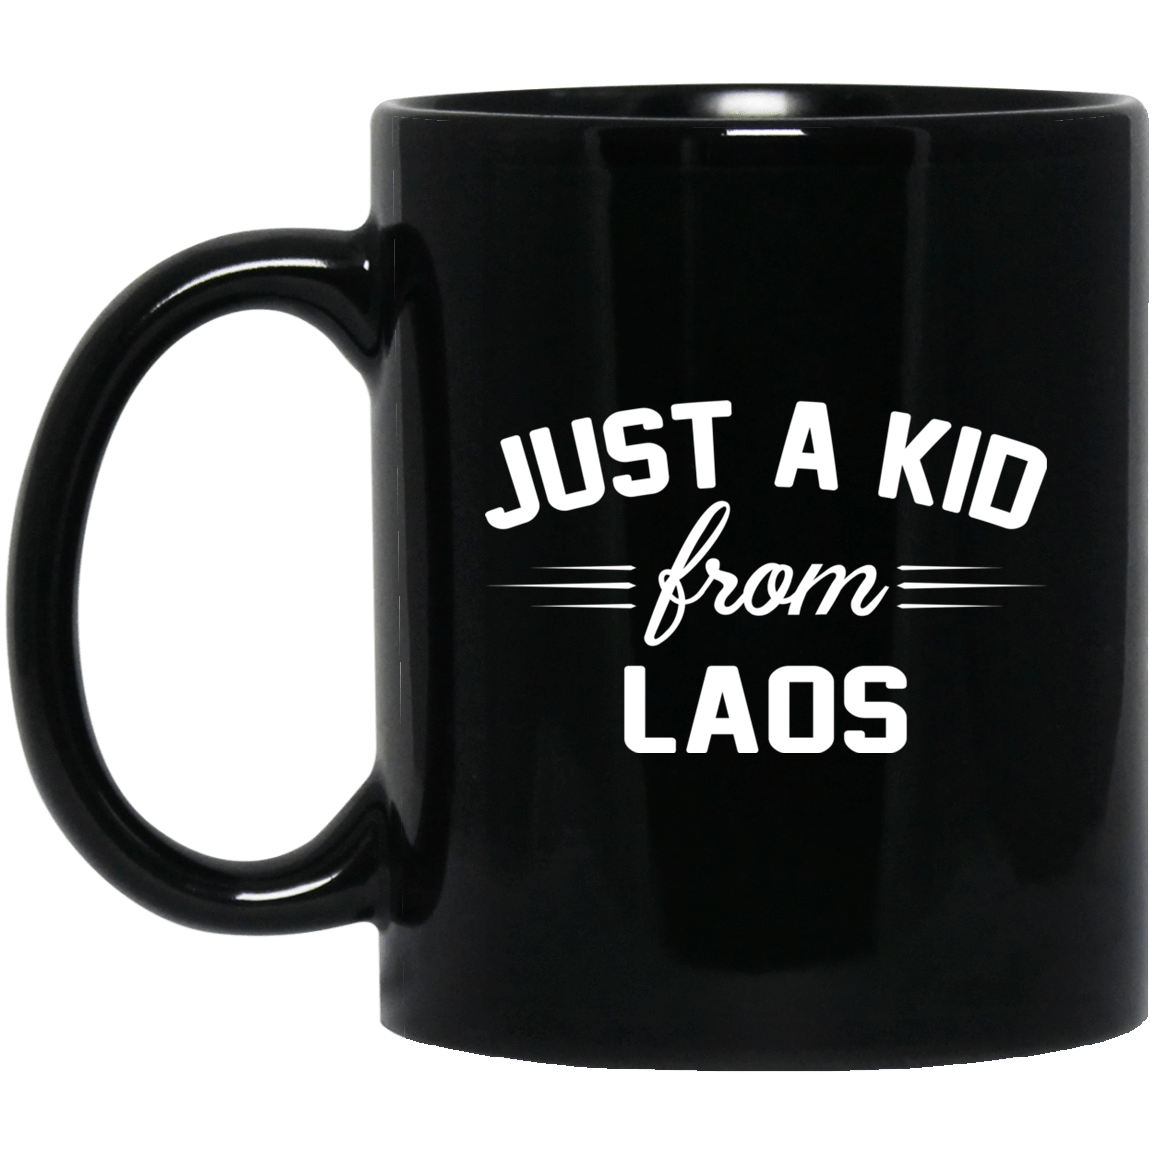 Just A Kid Store | Laos Mug 1065-10181-72111197-49307 - Tee Ript